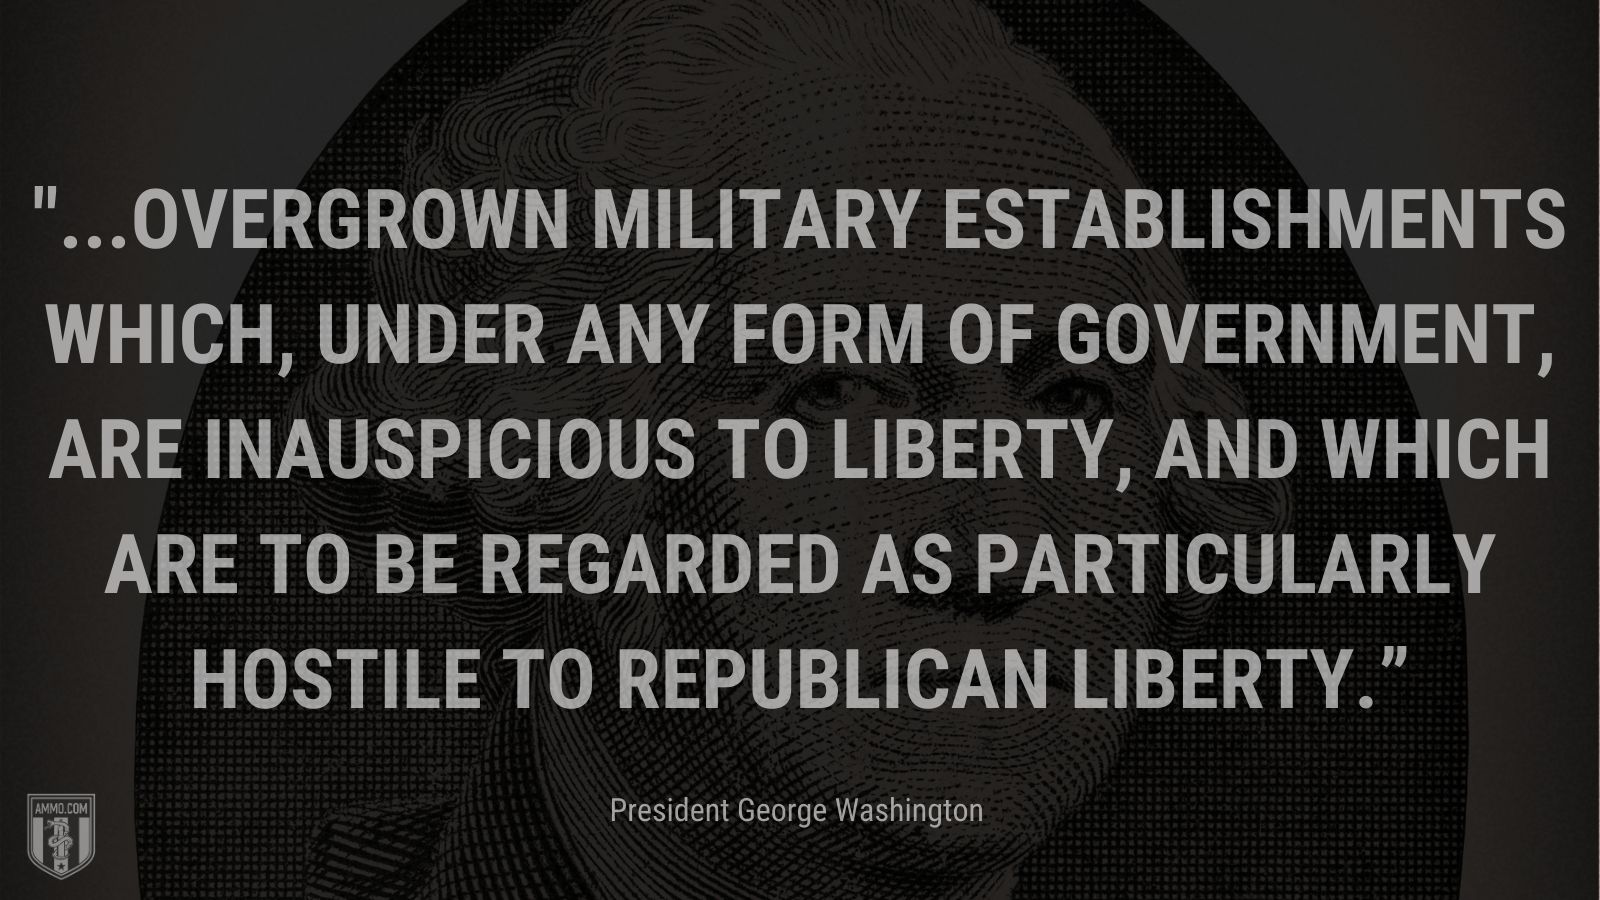 """""""...overgrown military establishments which, under any form of government, are inauspicious to liberty, and which are to be regarded as particularly hostile to republican liberty."""" - President George Washington"""